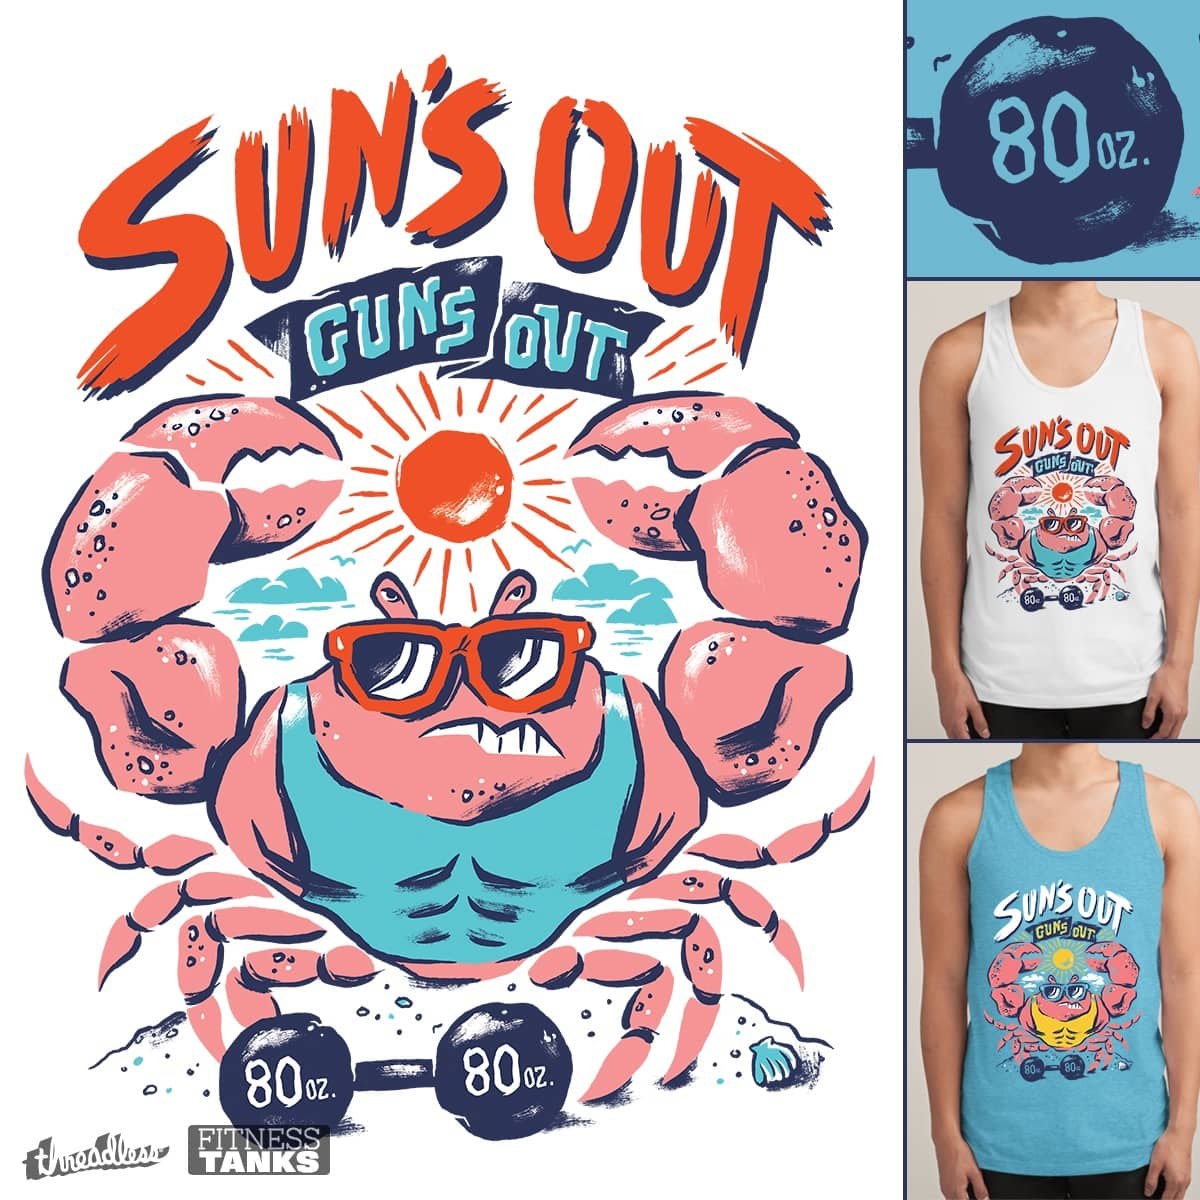 Suns Out Guns Out by cpdesign on Threadless